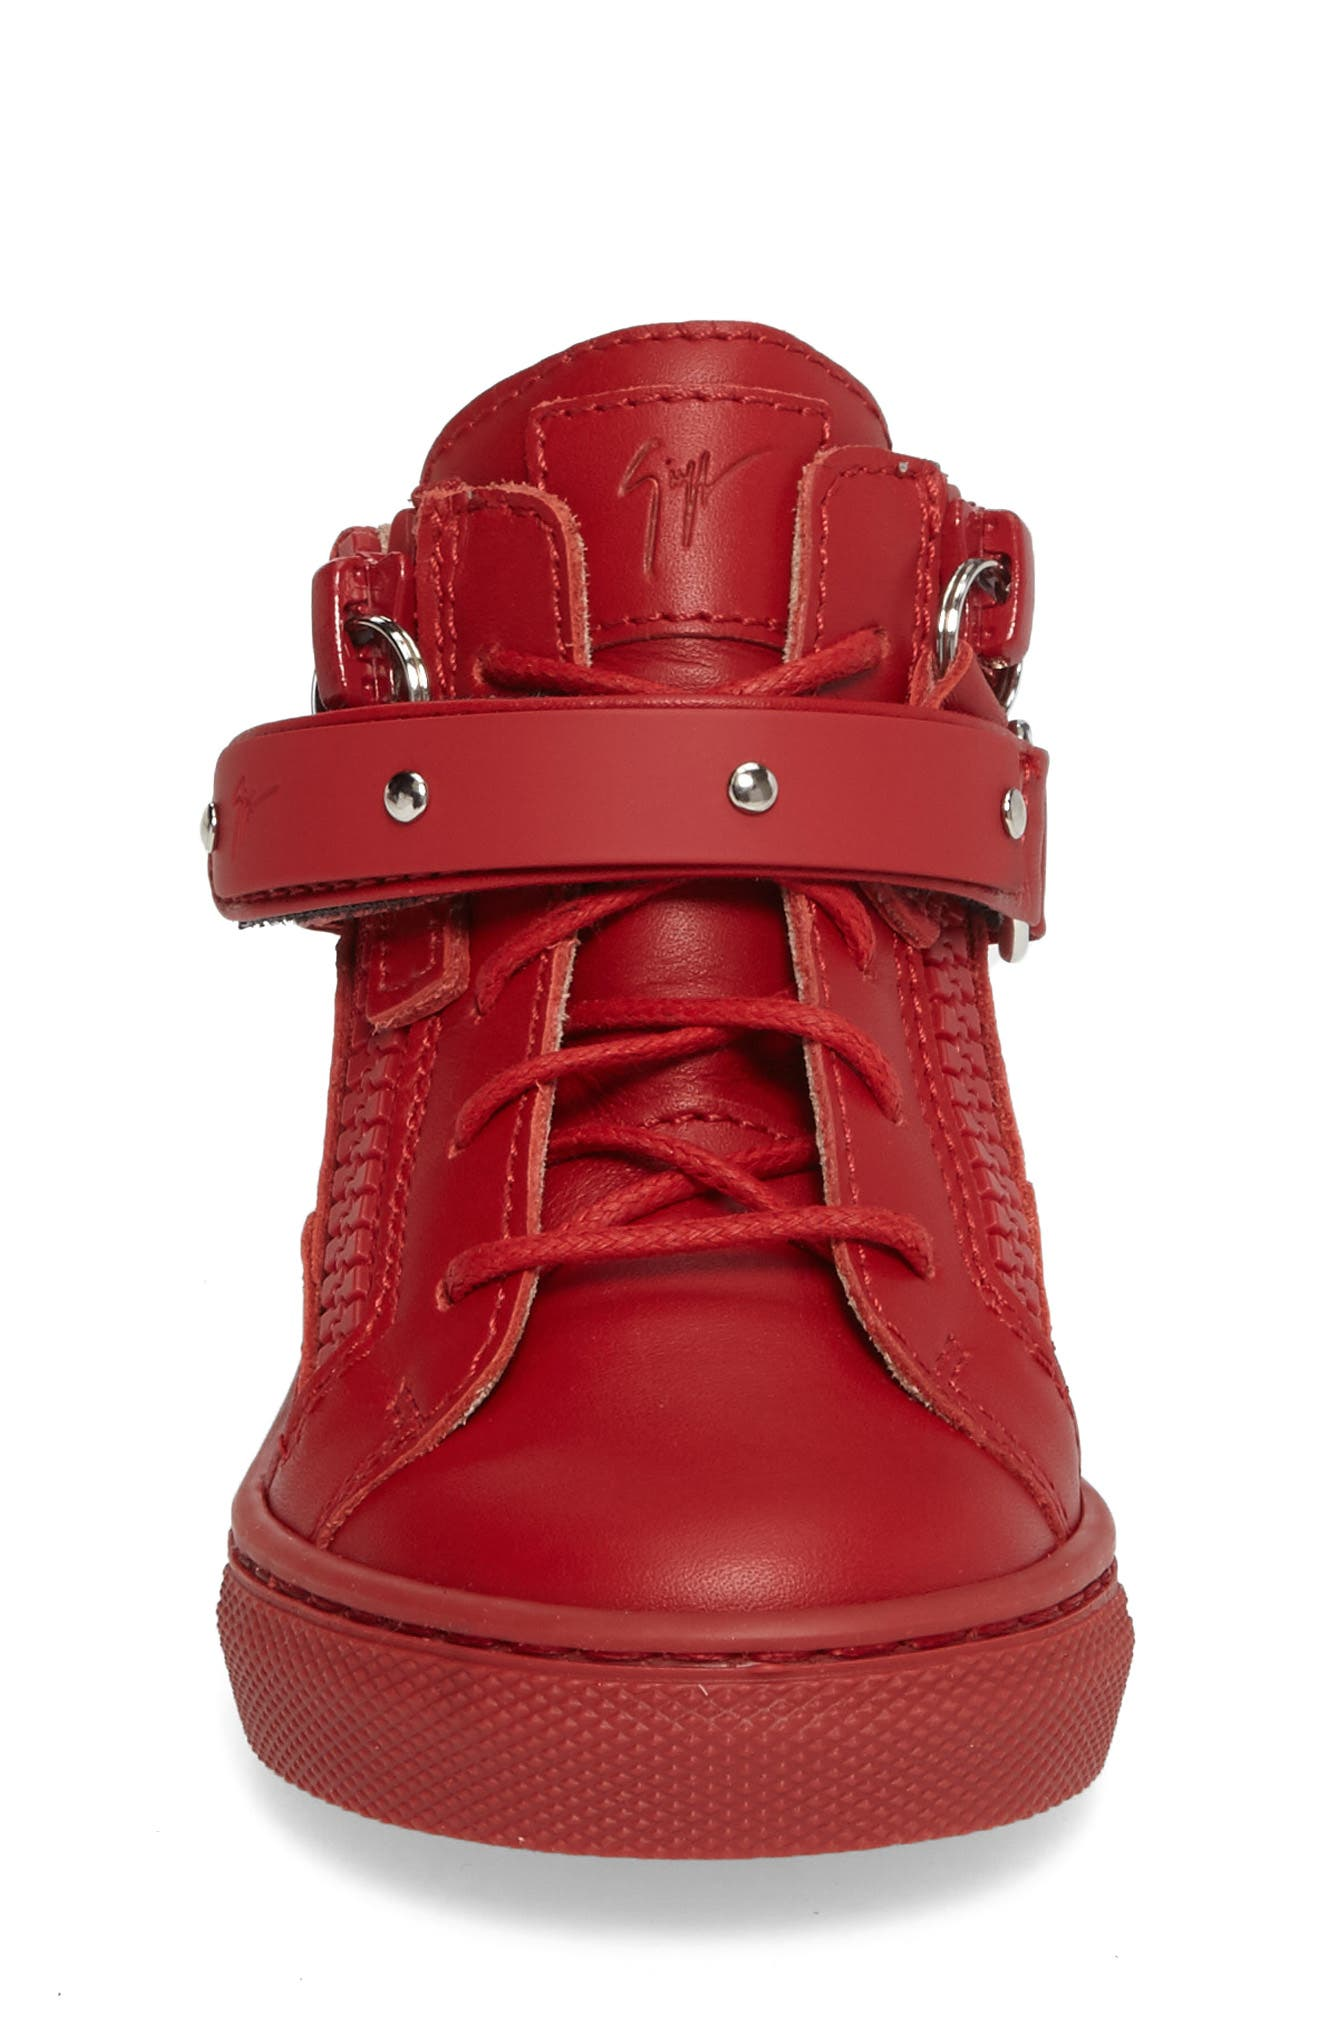 Taylor Junior High Top Sneaker,                             Alternate thumbnail 3, color,                             Red Leather